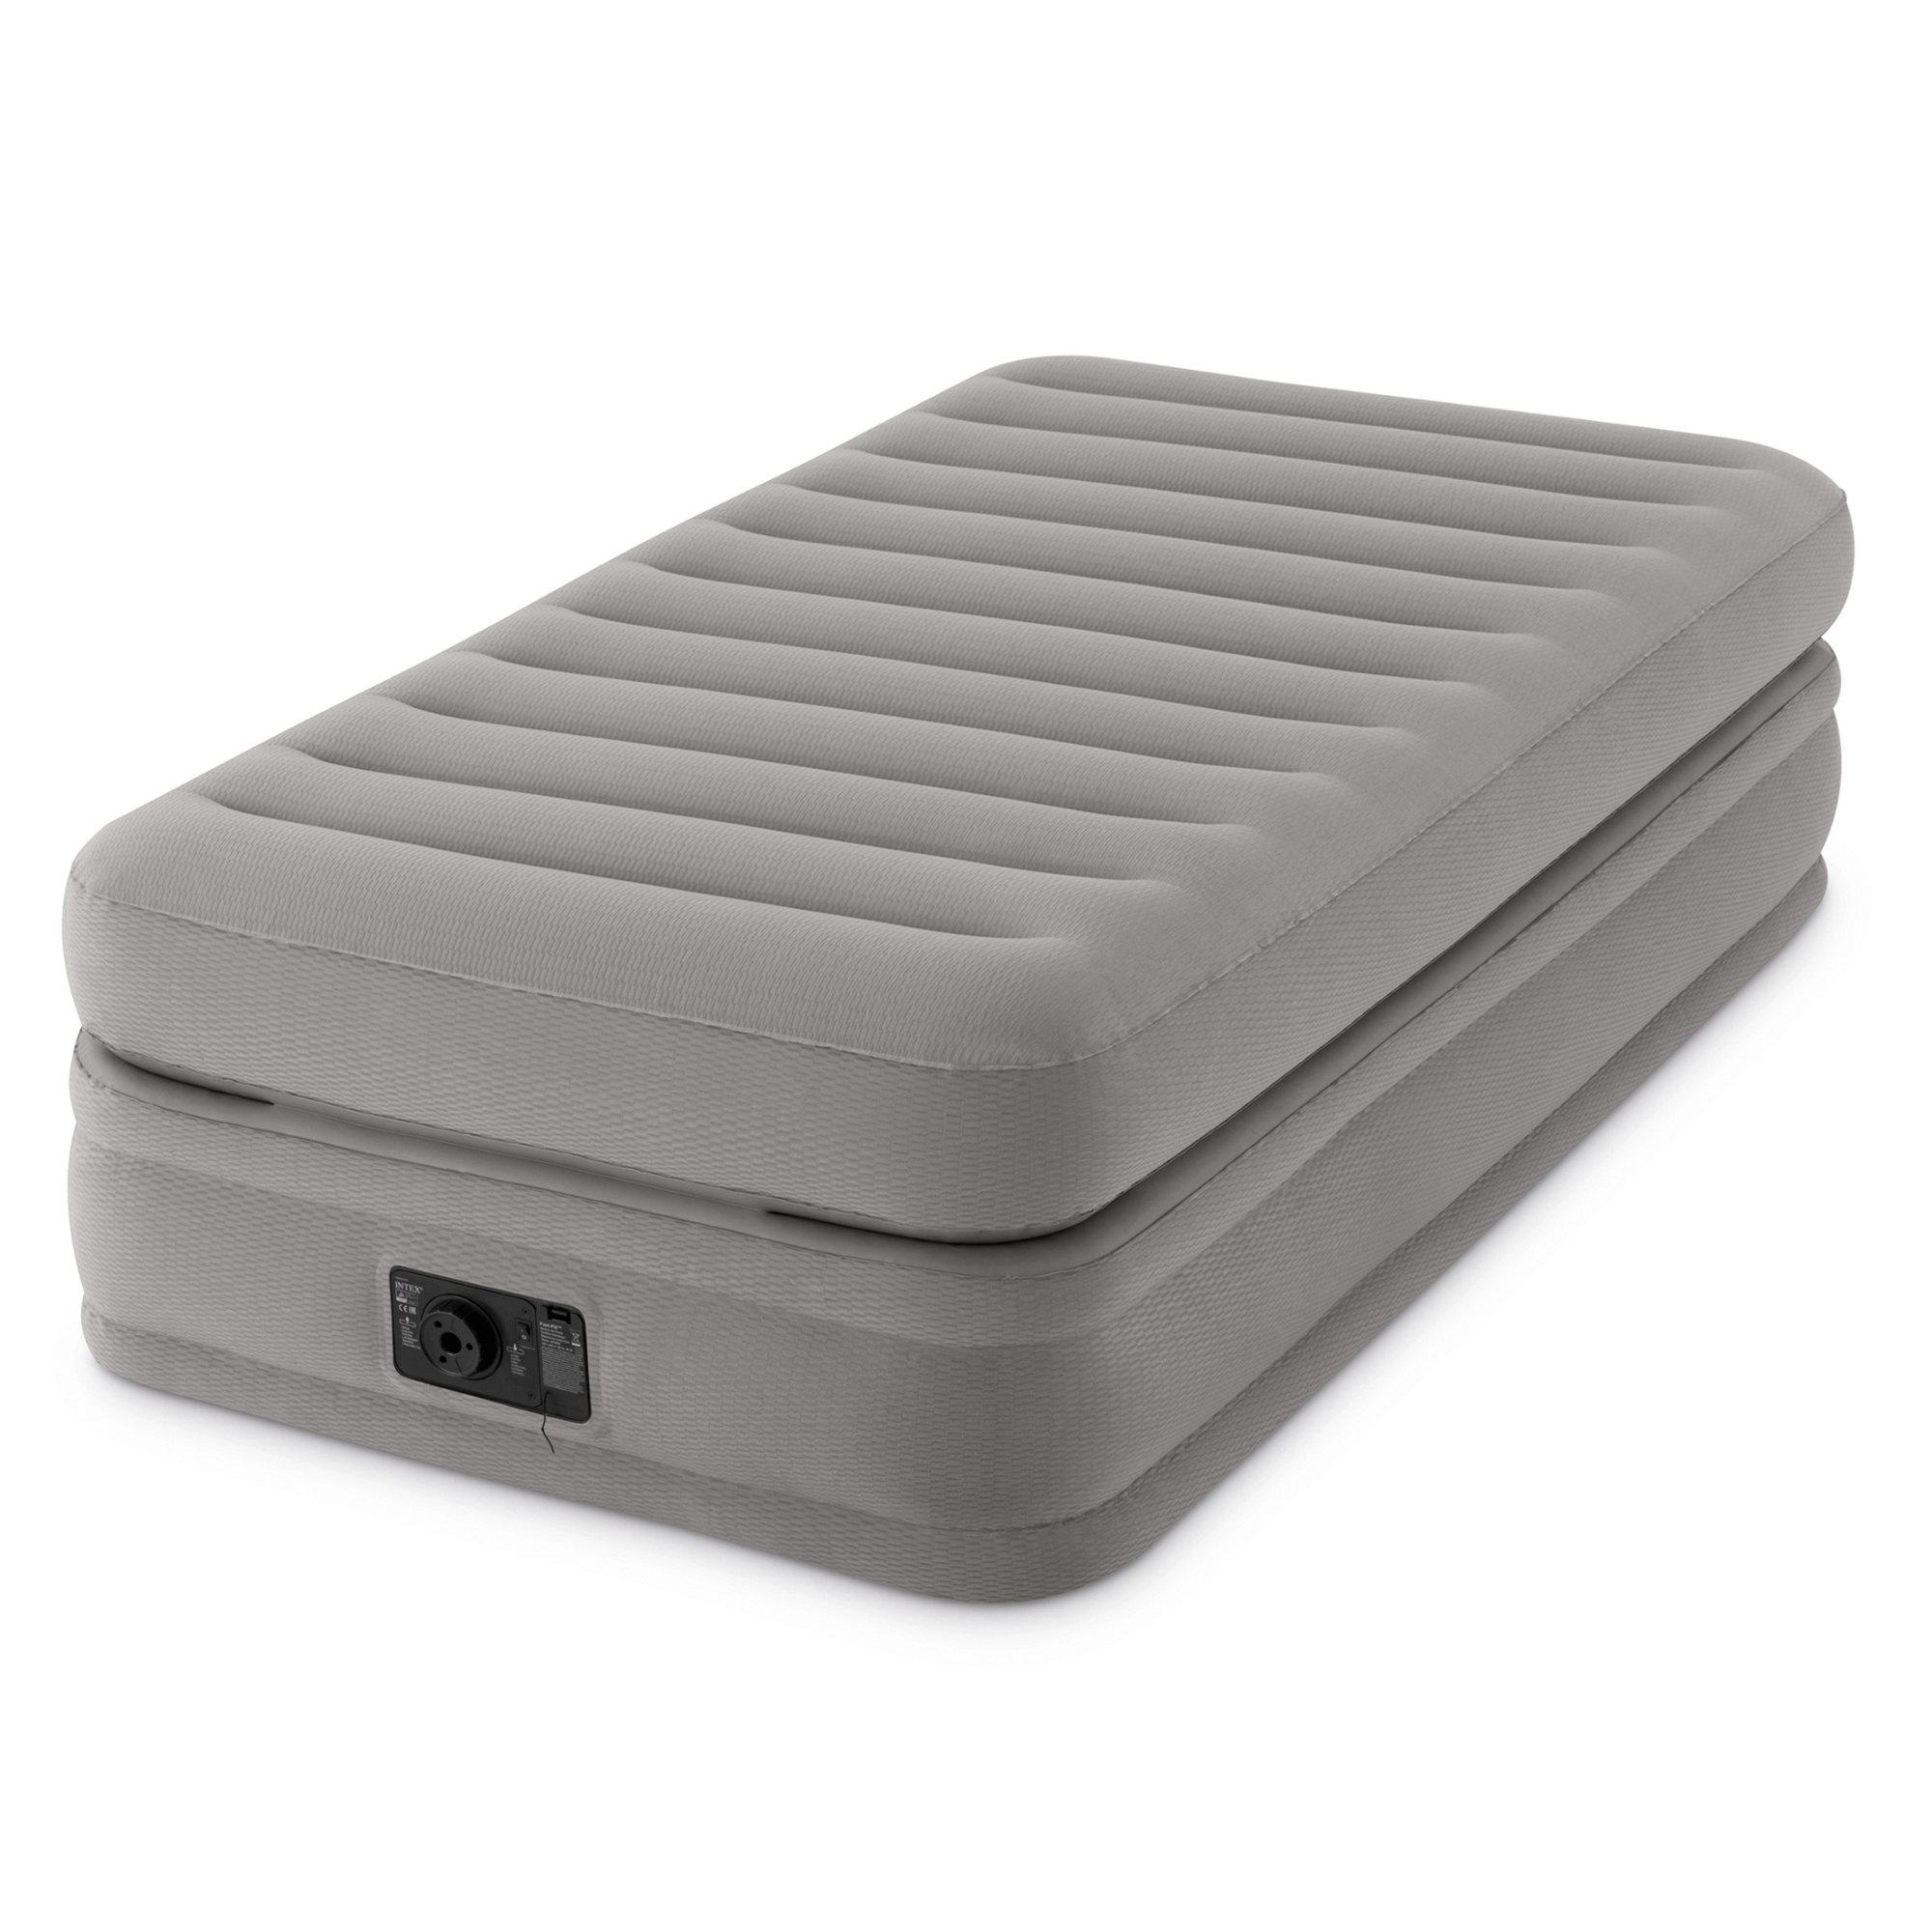 "Intex Twin 20"" Prime Comfort Elevated Airbed Mattress with Built-in Pump"